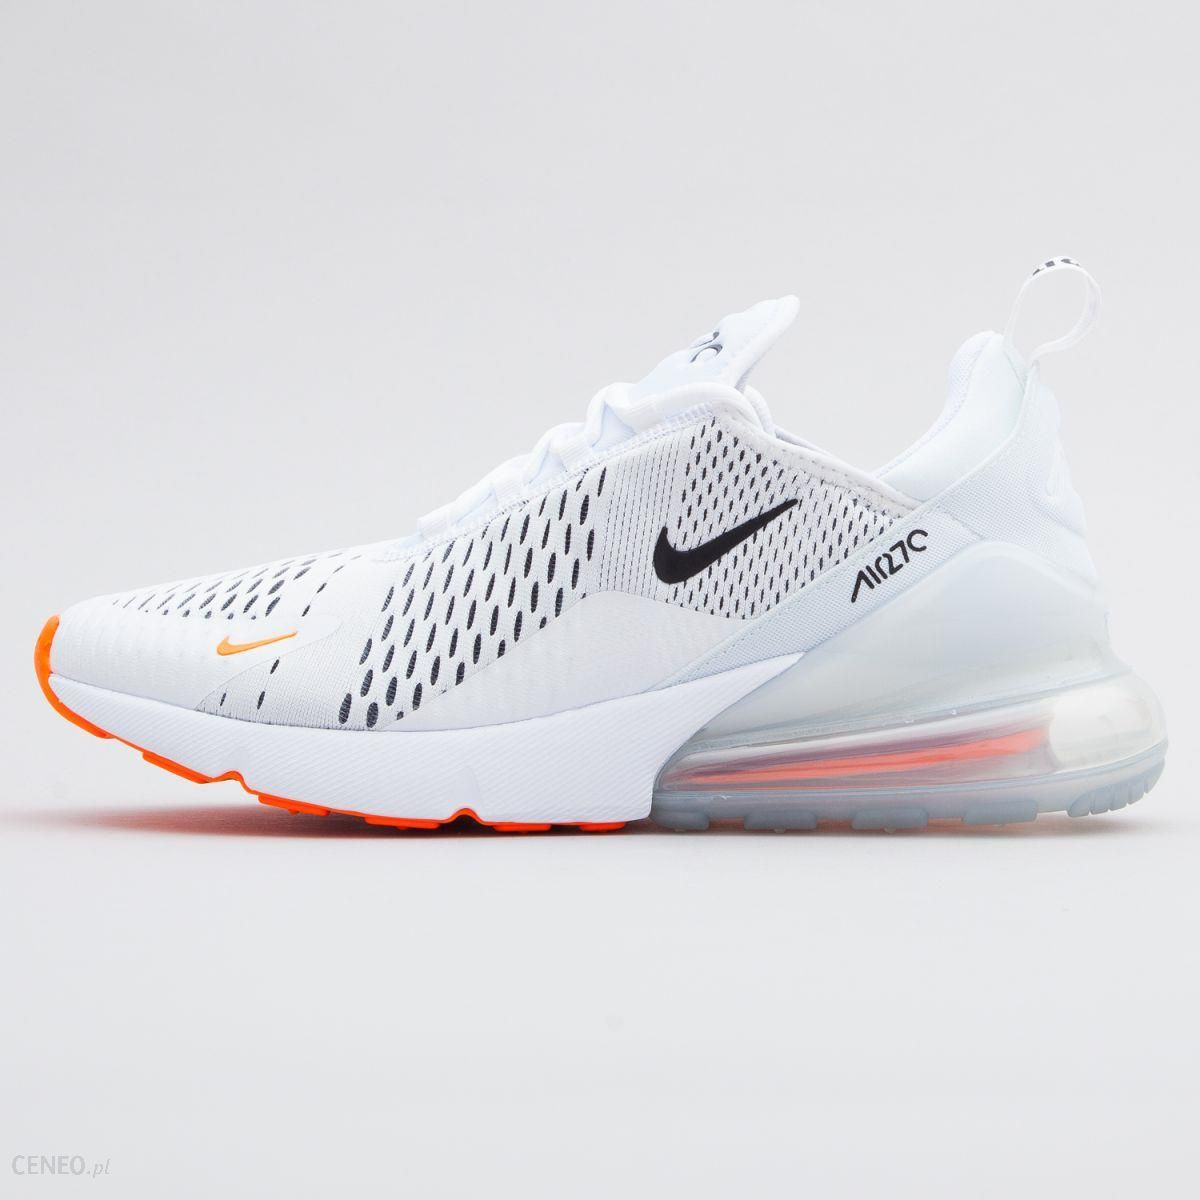 Nike AIR MAX 270 Just Do It: AH8050 106 Ceny i opinie Ceneo.pl